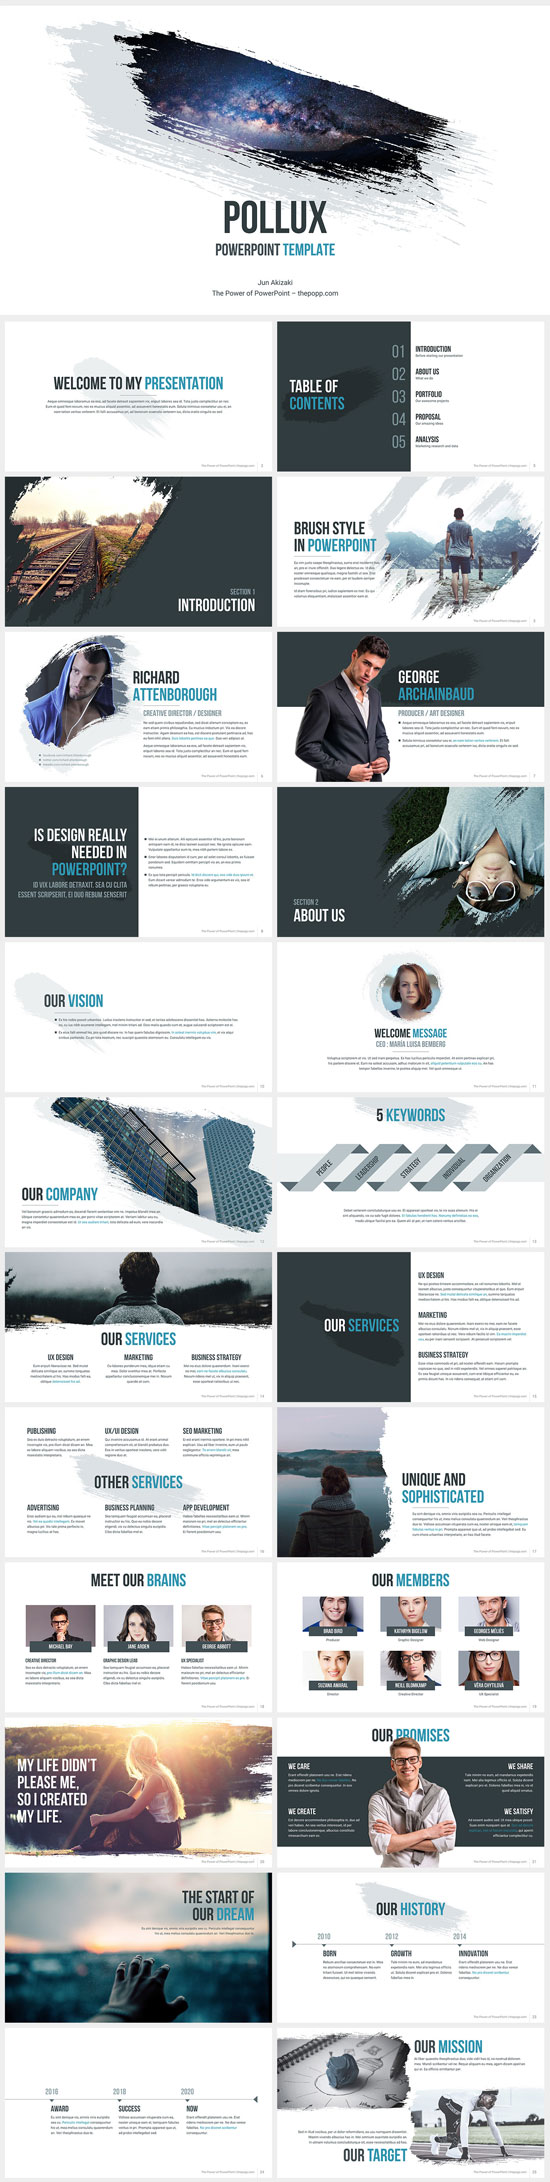 Collection of free beautiful and creative powerpoint templates free powerpoint templates collection no 8 download toneelgroepblik Images